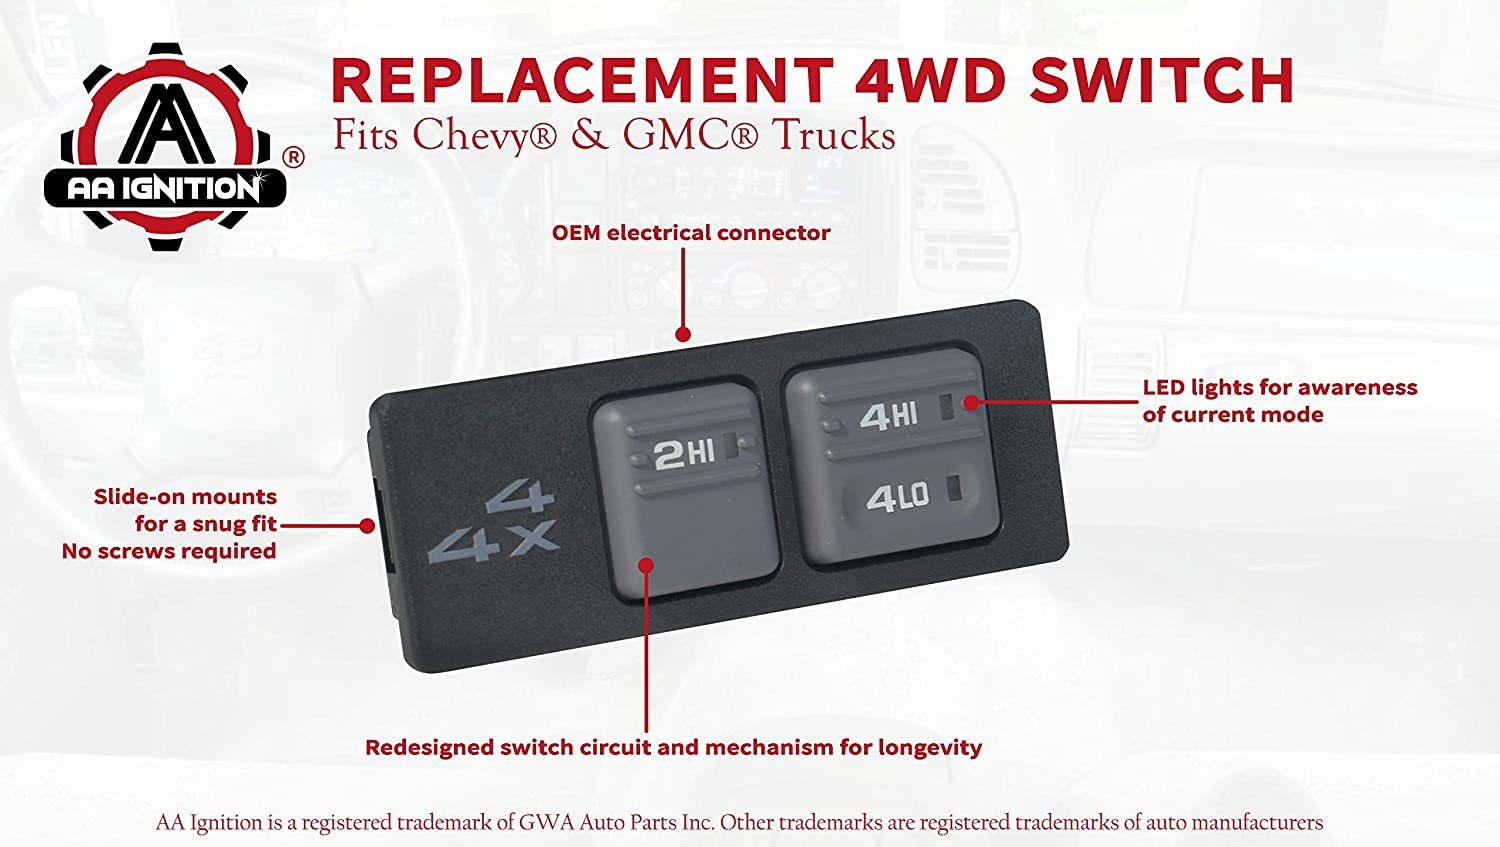 1999 gmc suburban wiring diagram amazon com replacement 4wd selector switch fits chevy k1500  4wd selector switch fits chevy k1500